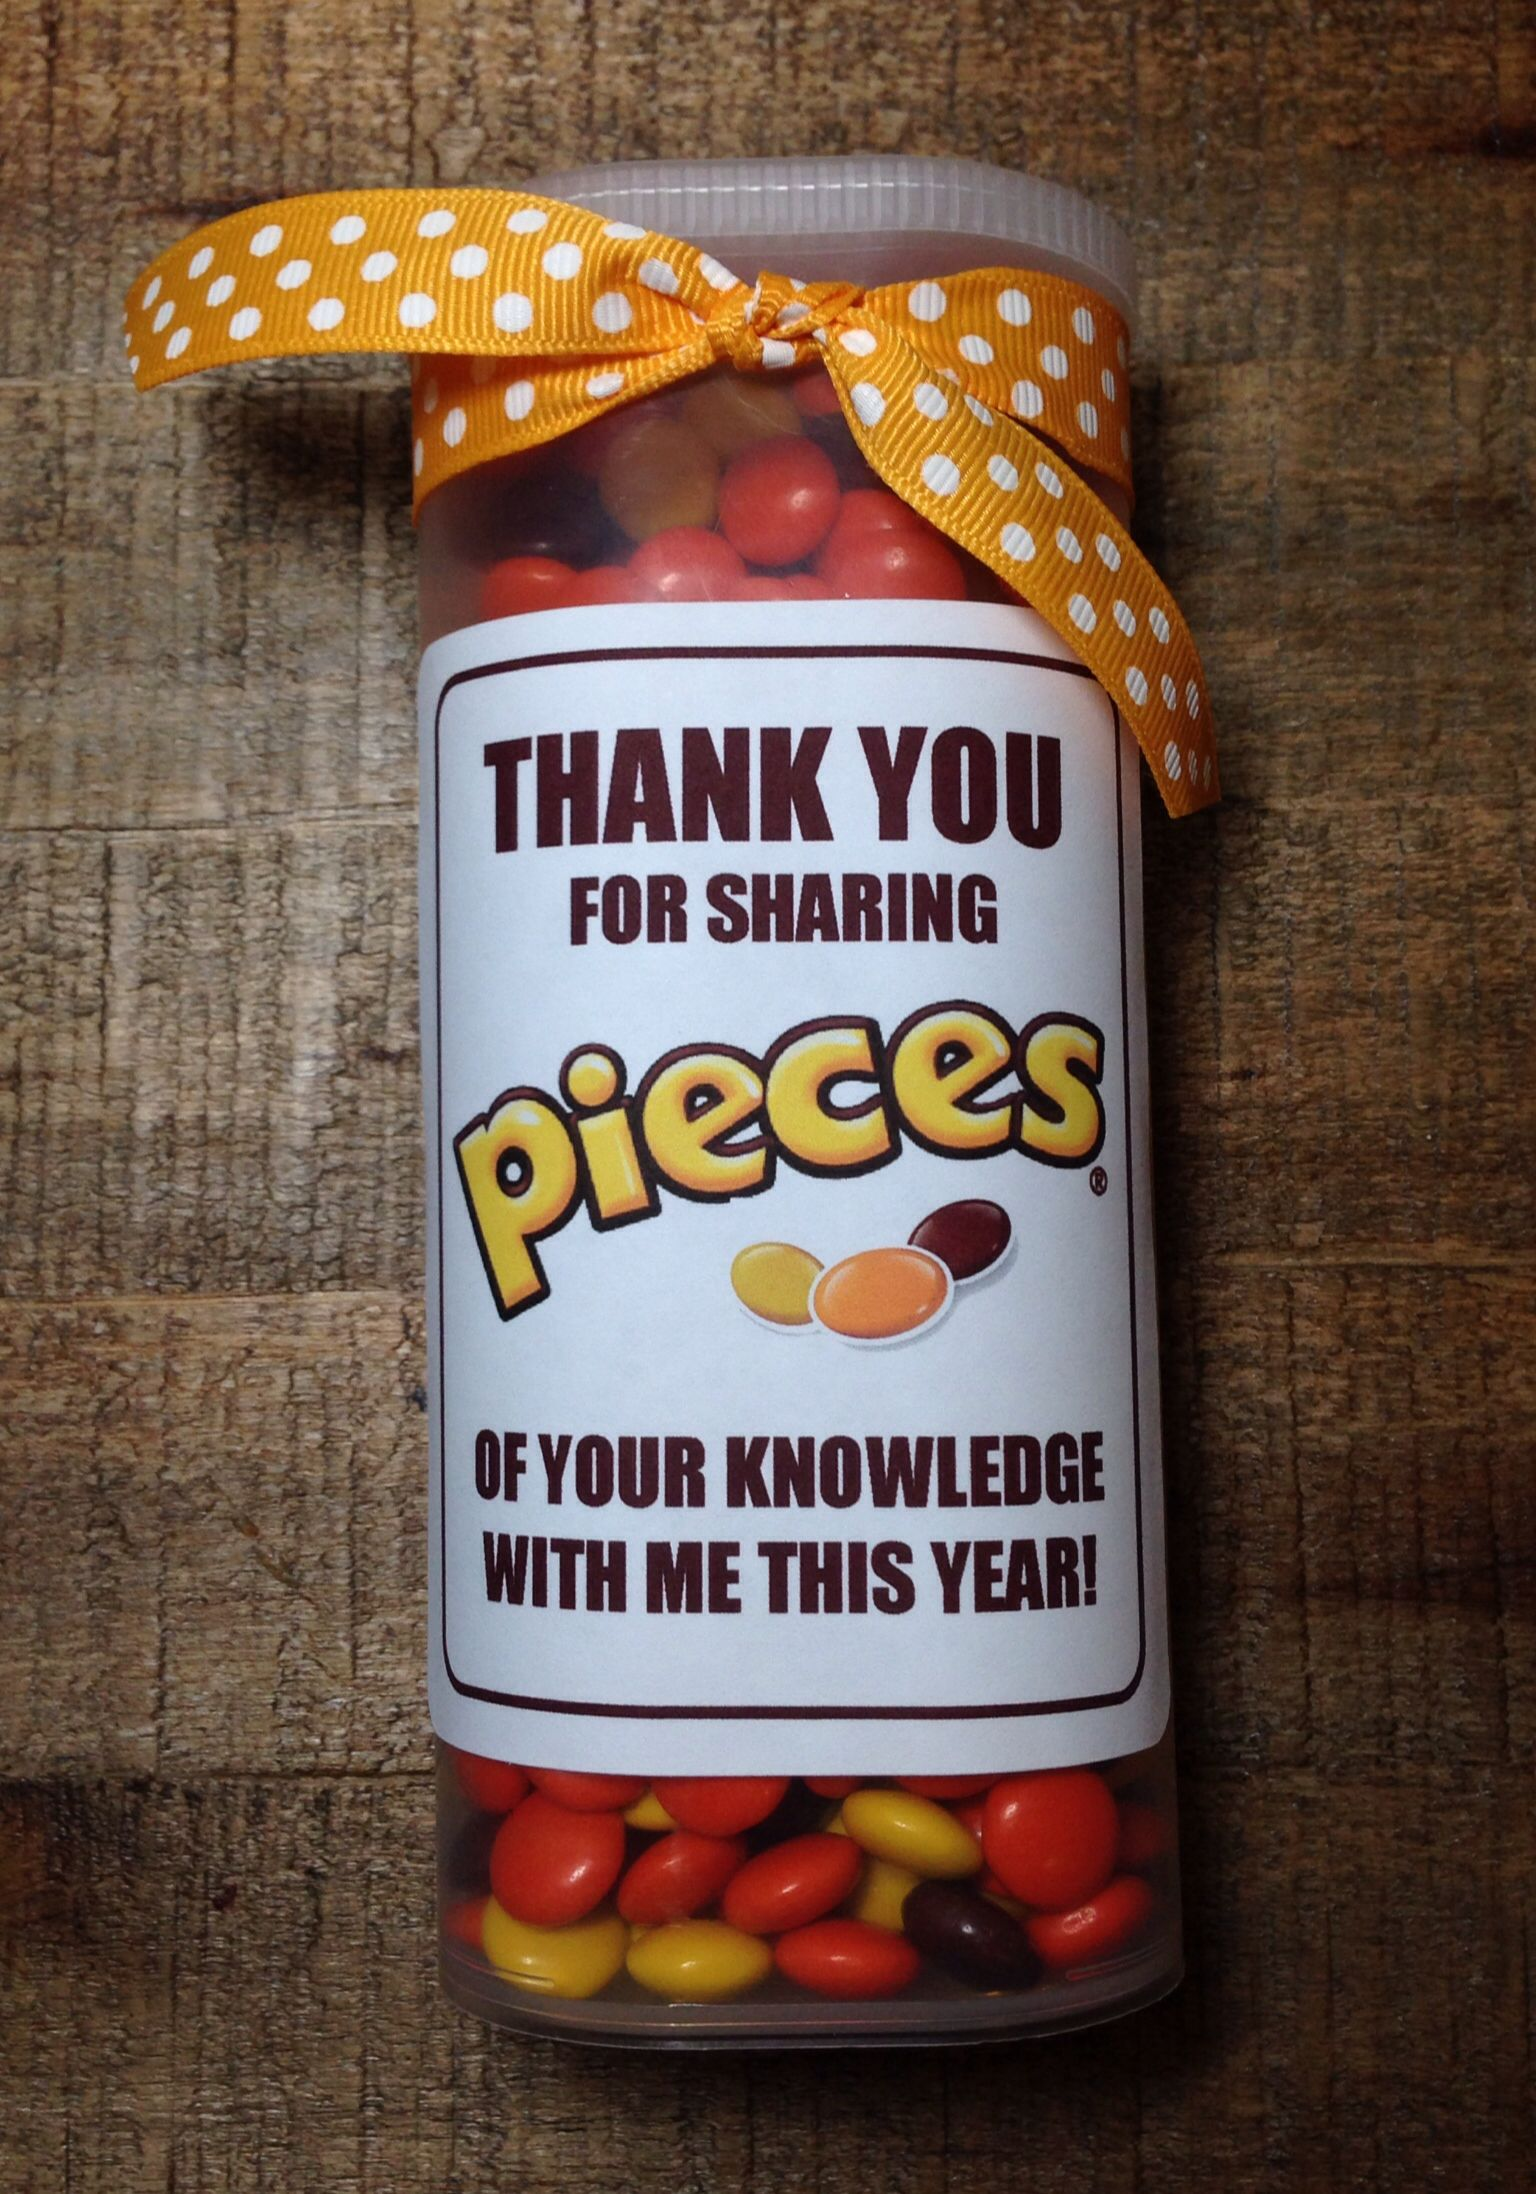 picture regarding Thank You for Sharing Pieces of Your Knowledge With Me Printable identified as Instructor Appreciation Present - Reeses Parts inside a Crystal